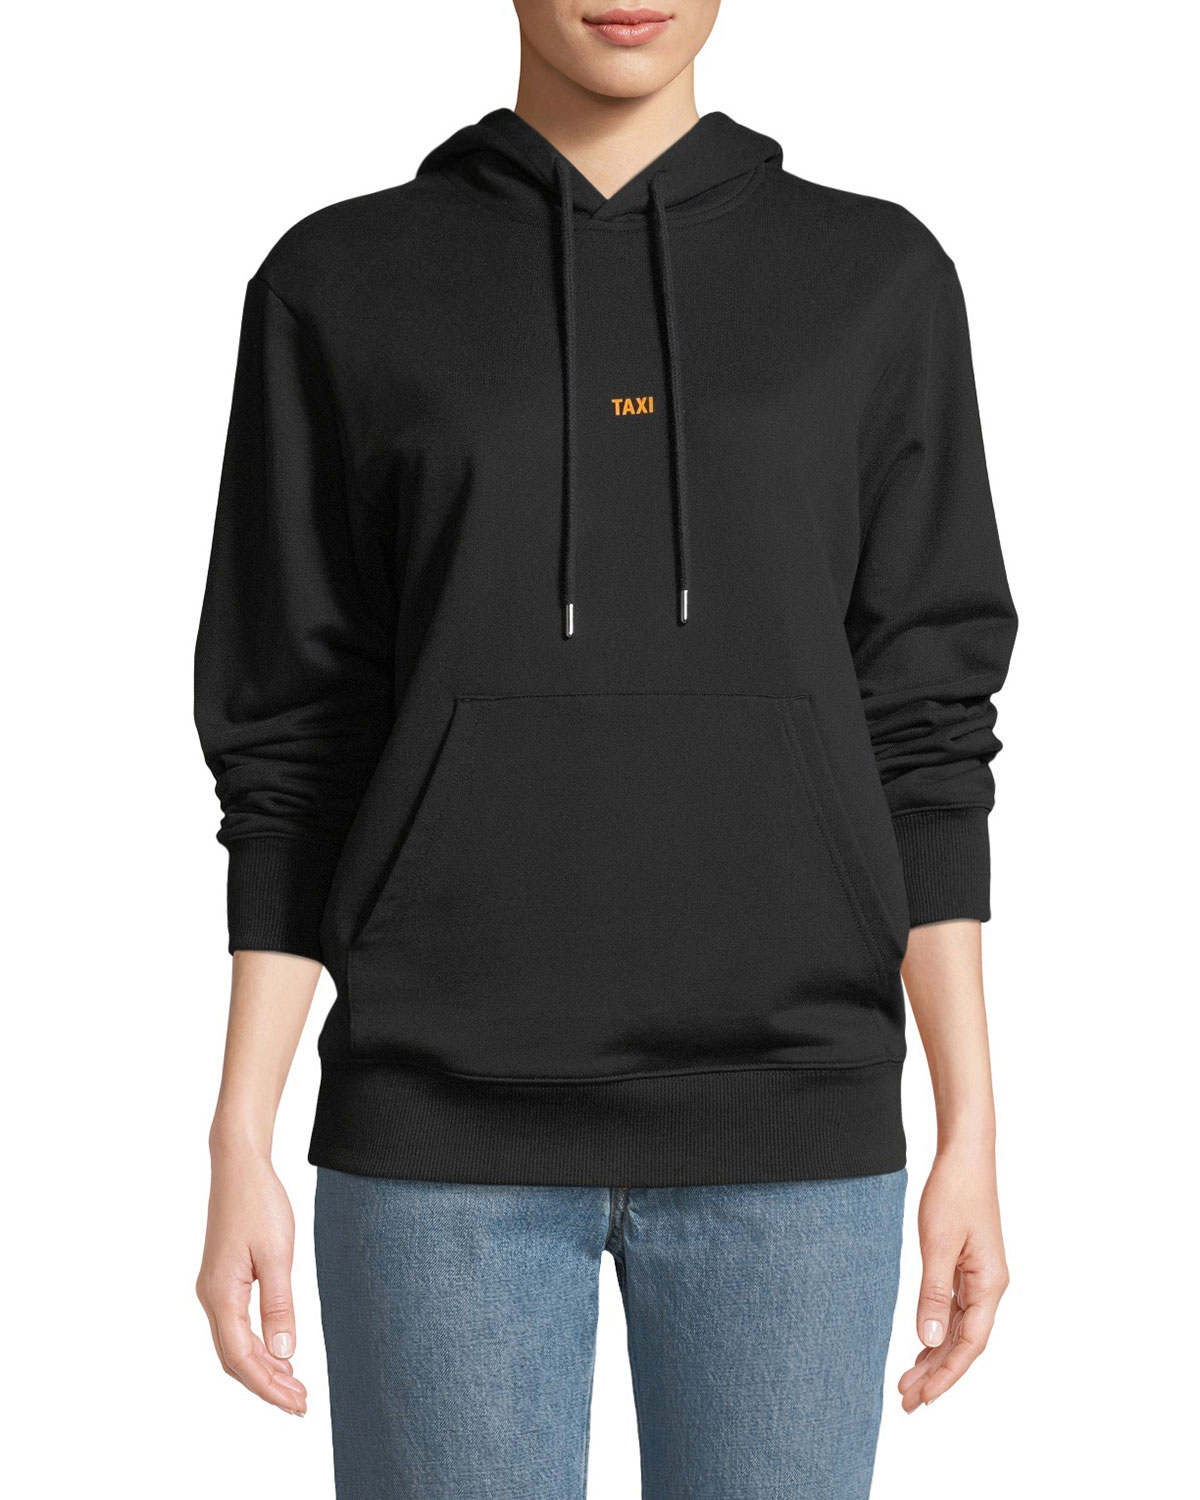 94ba2a52d Helmut Lang Taxi Graphic Cotton Pullover Hoodie Sweatshirt | Neiman ...